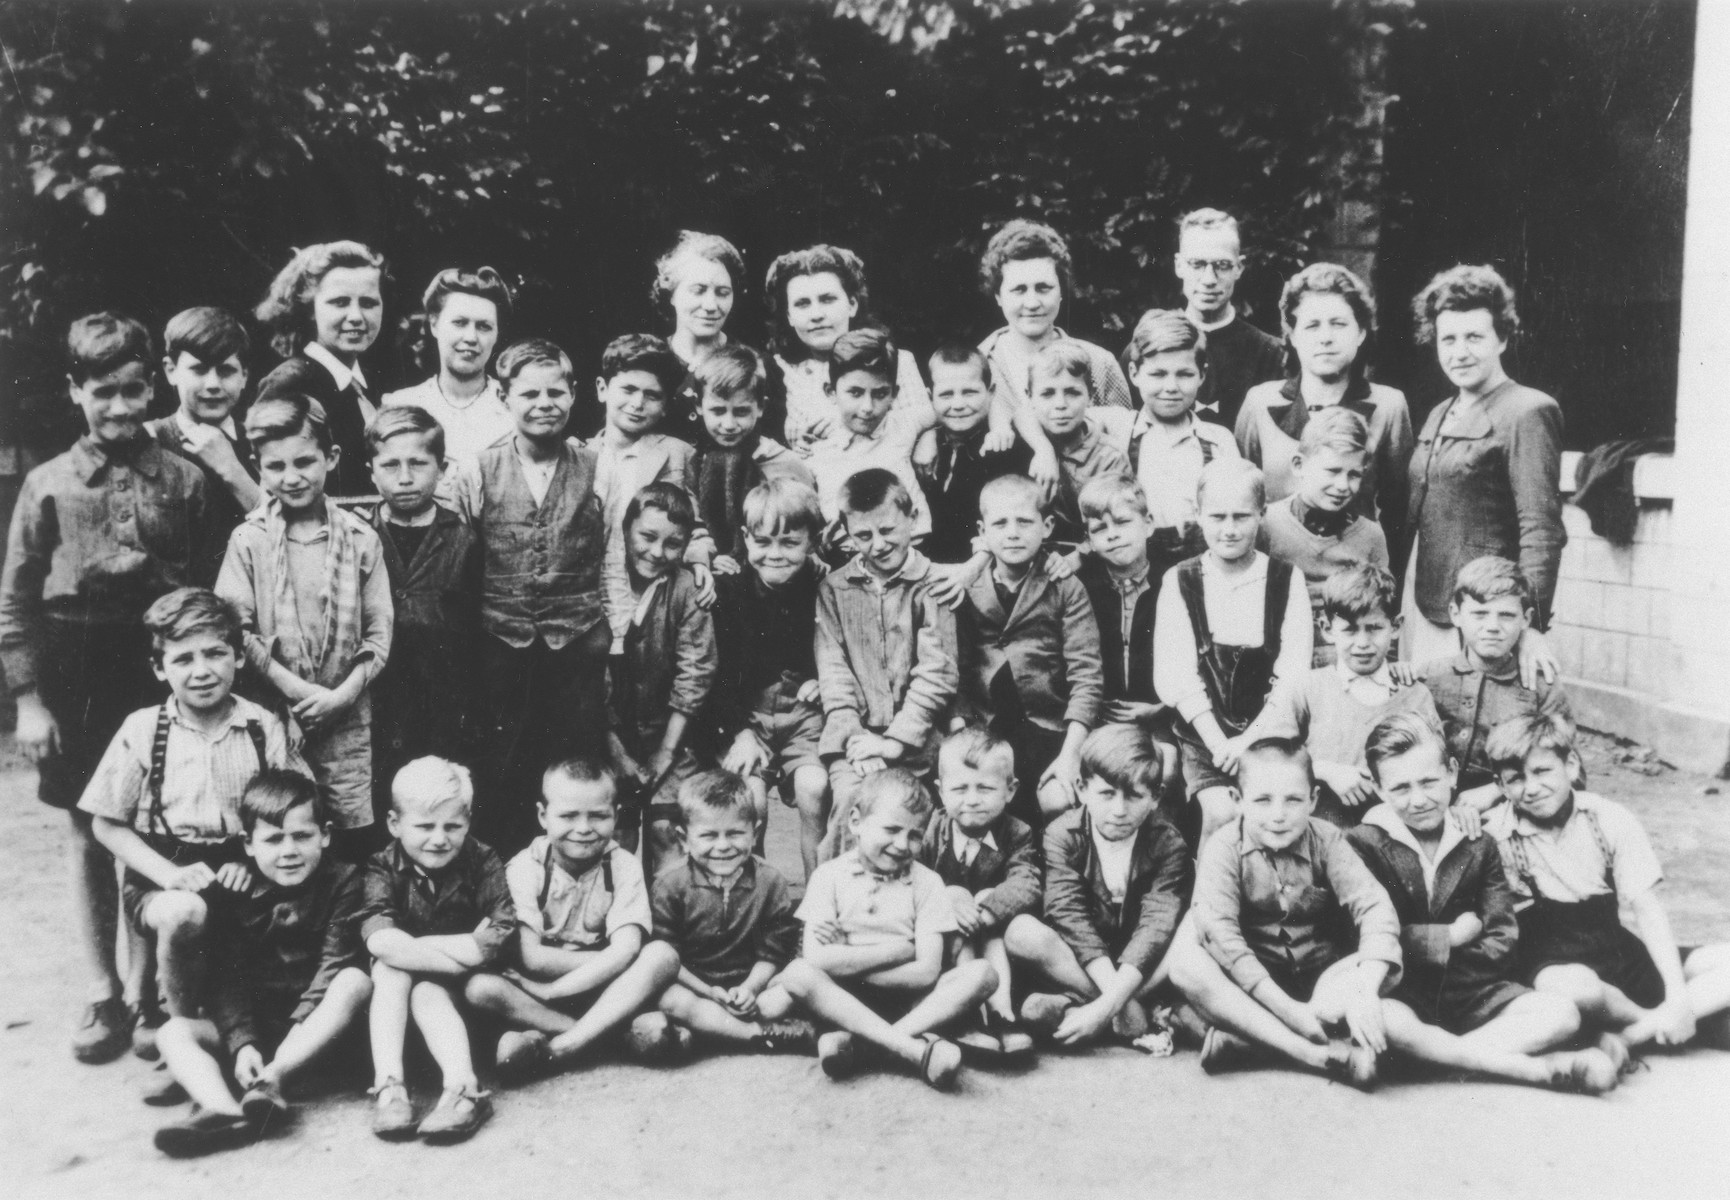 Group portrait of students and teachers at the Saint Jan Berchmans convent school in Maaseik.  Among those pictured are Jack Goldstein (third row from the bottom, right side) and his twin brother Bruno (in front of Jack), who are living in hiding at the convent.